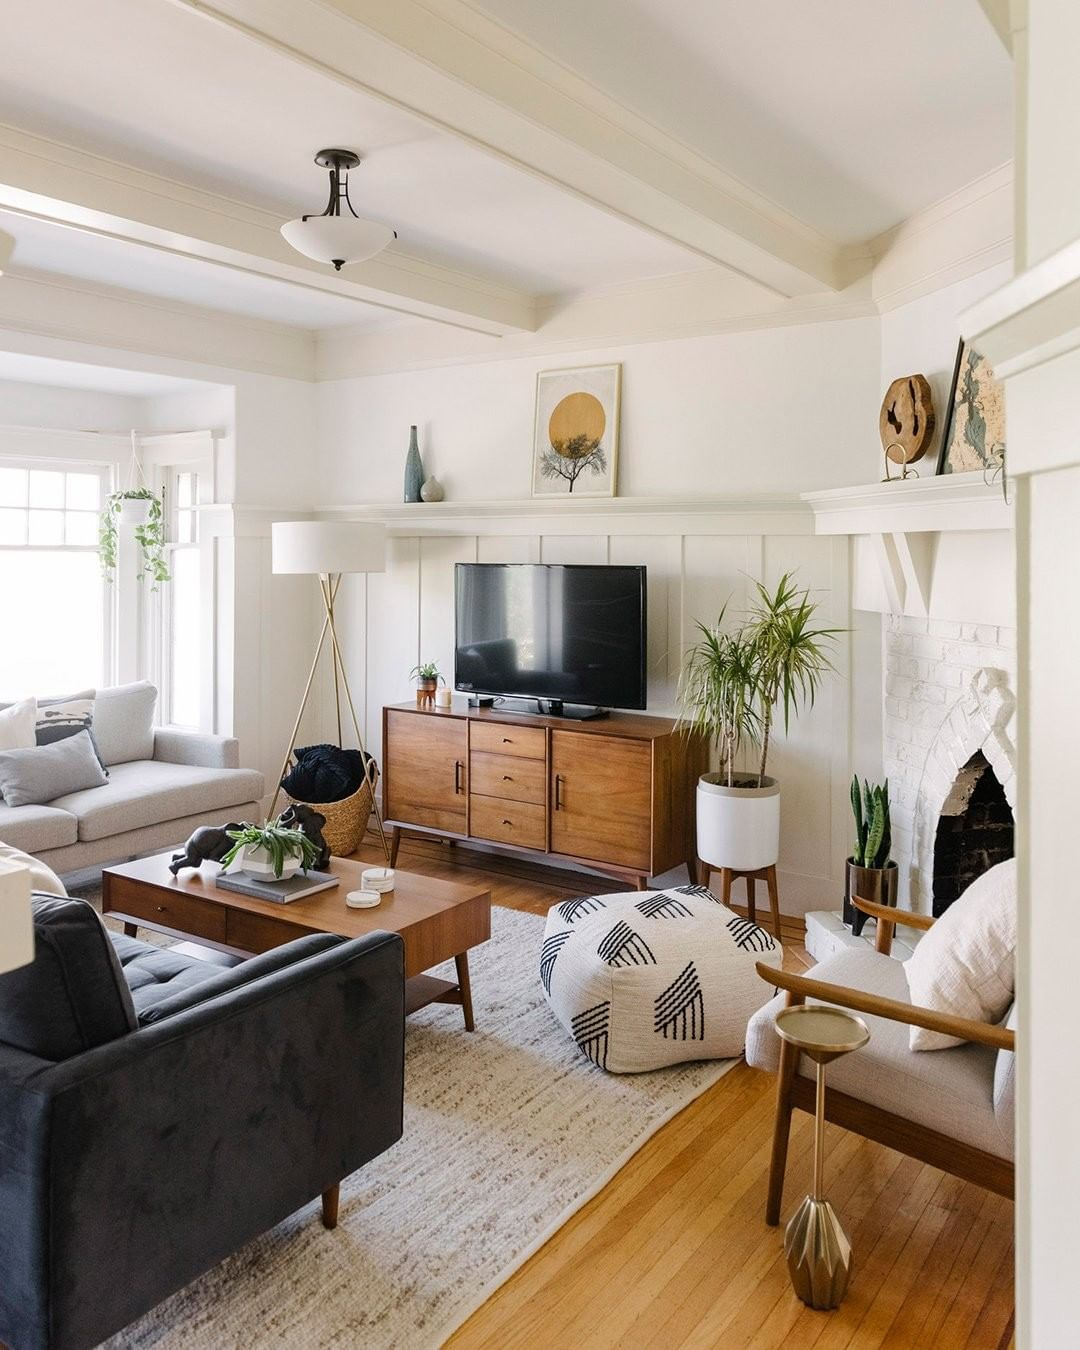 5 215 Likes 17 Comments West Elm Furniture Decor Westelm On Instagram Like Mid Century Style Then You Re Going To Home Living Room Home Home Decor